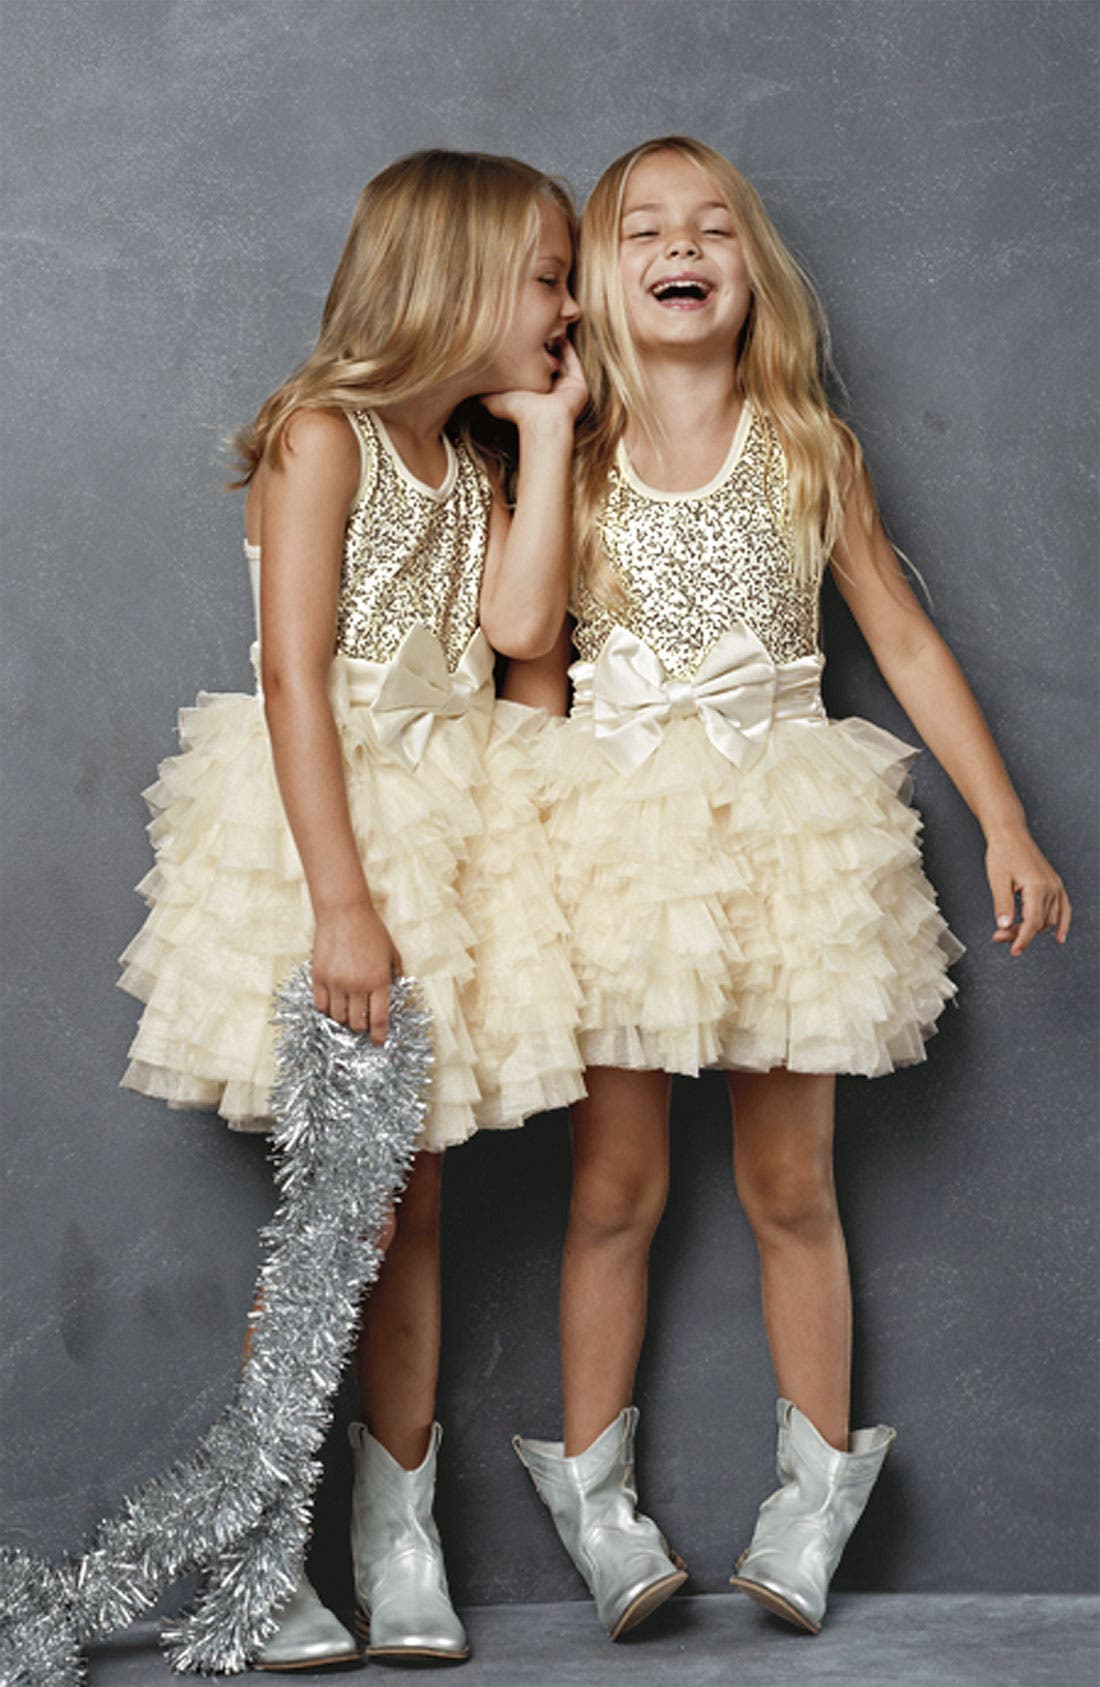 Main Image - Ooh! La, La! Couture Dress & Peek Boots (Little Girls & Big Girls)